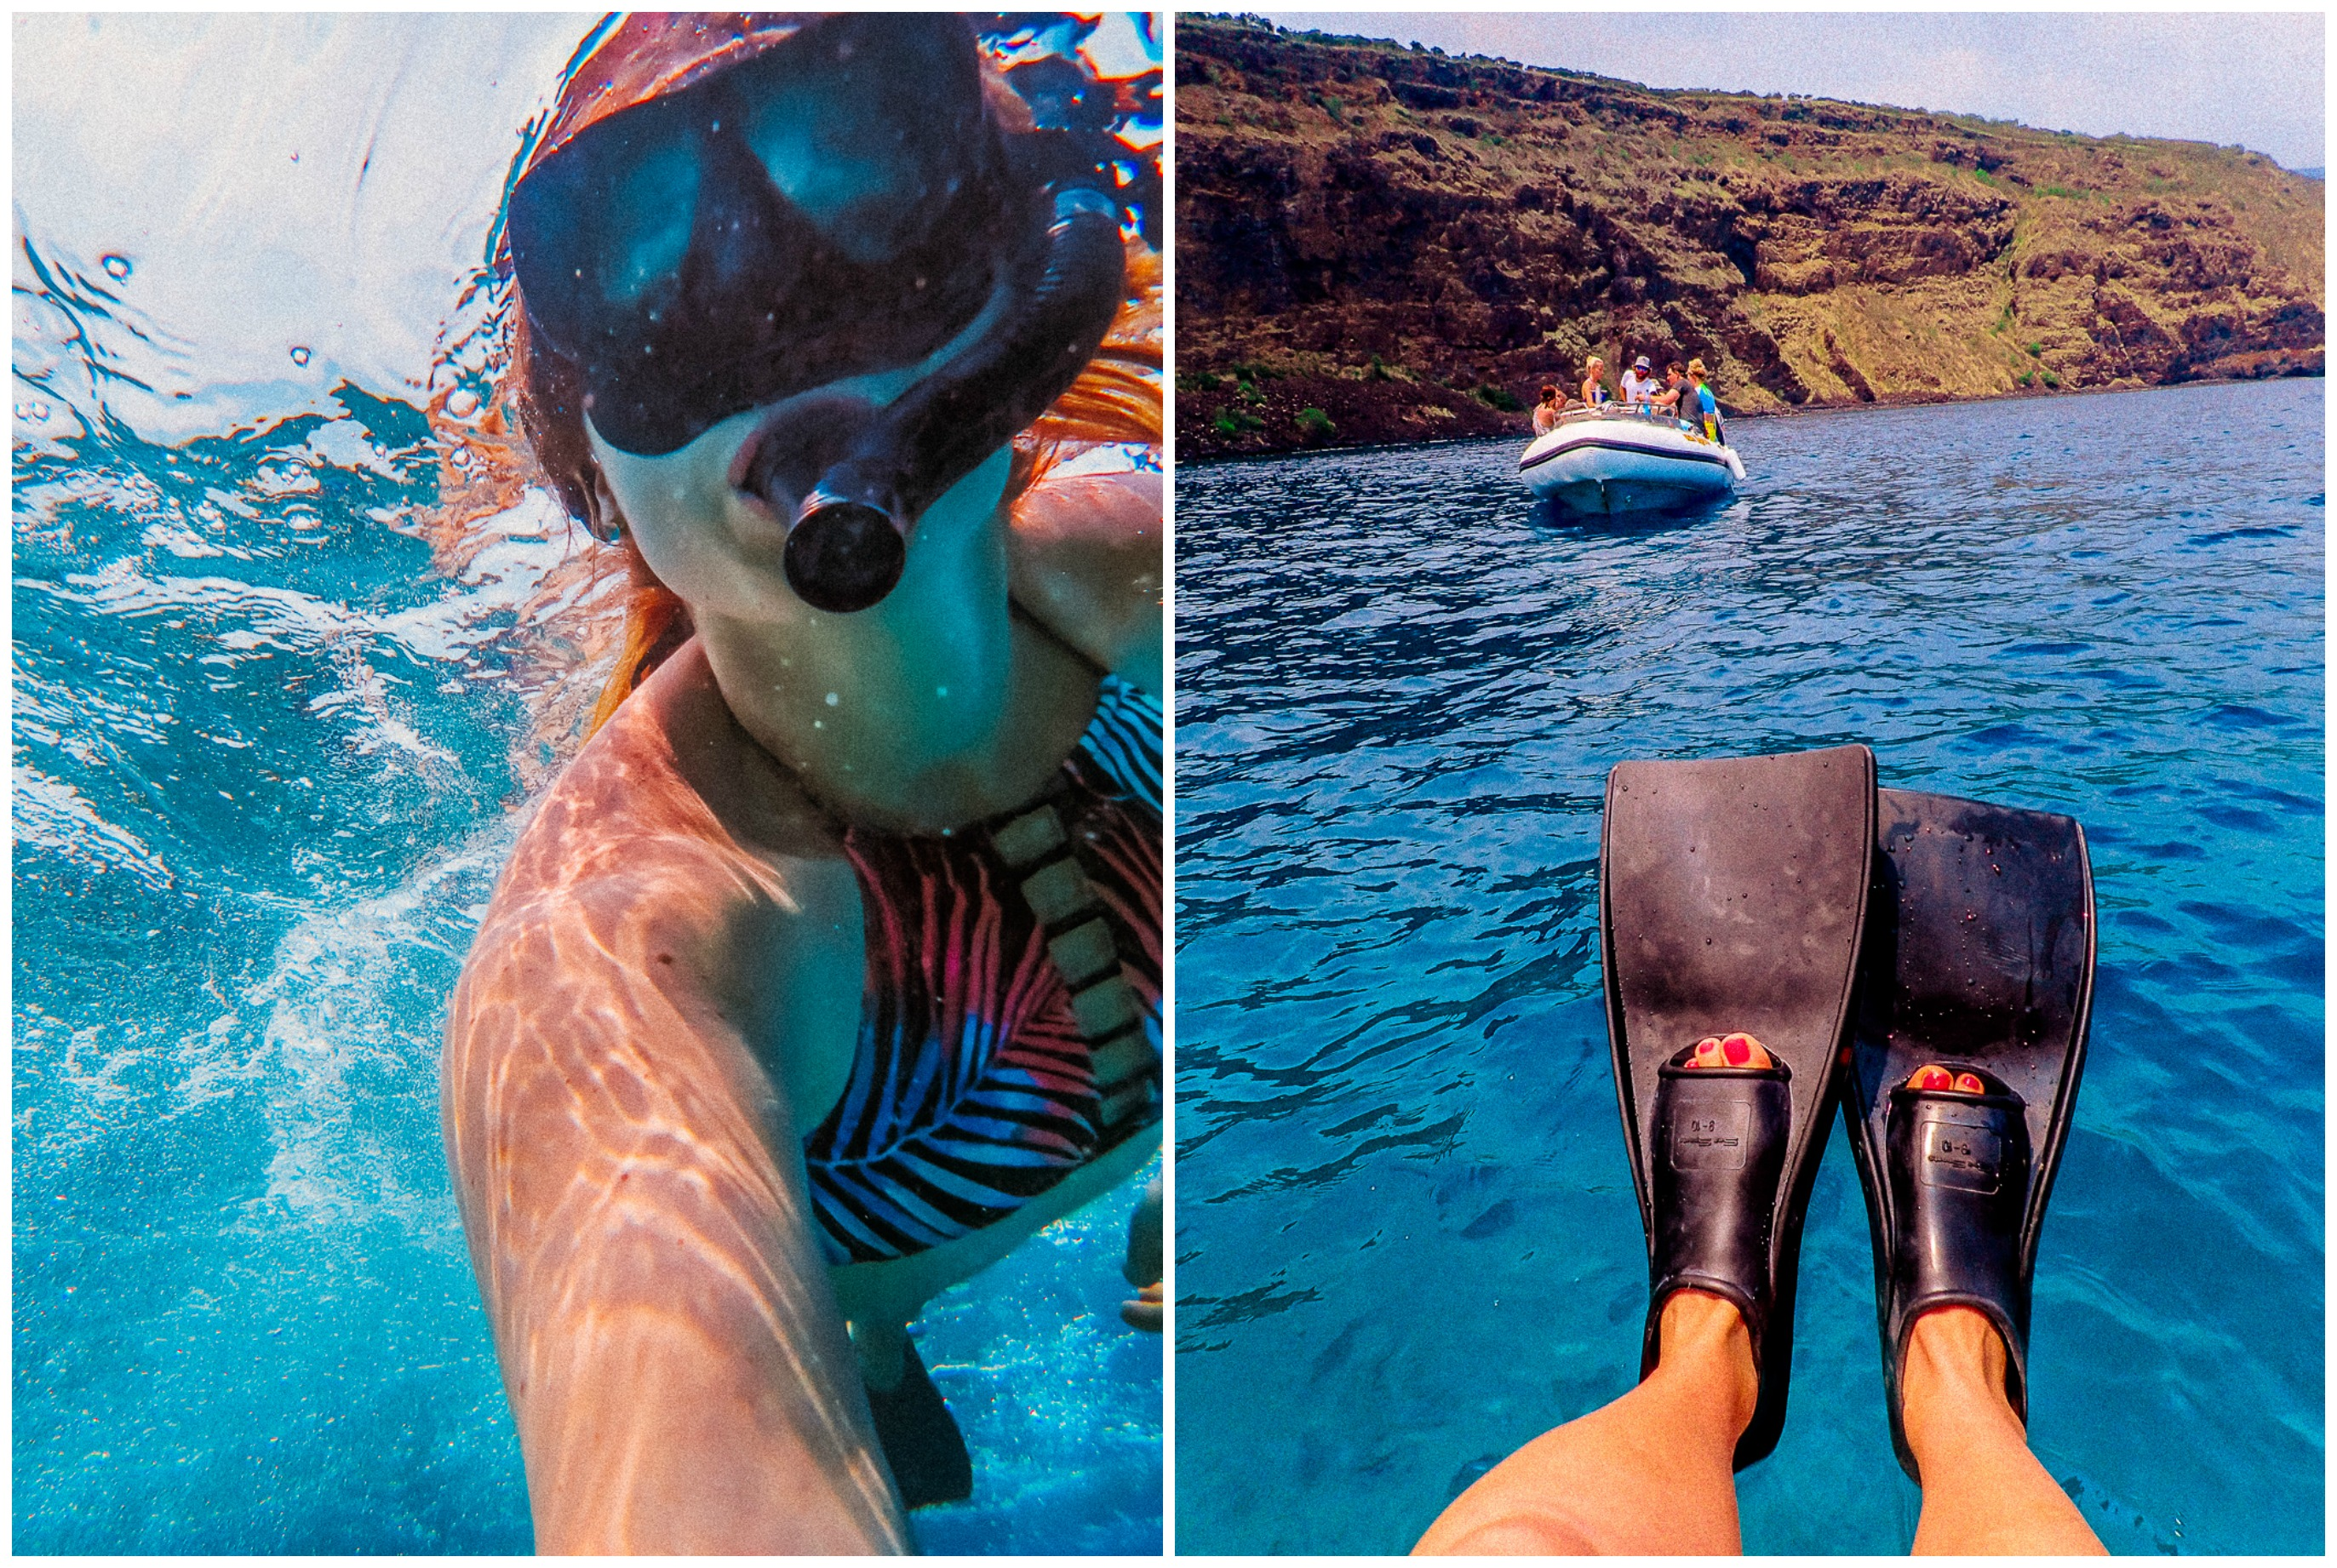 Snorkeling Captain Cook The Big Island Hawaii